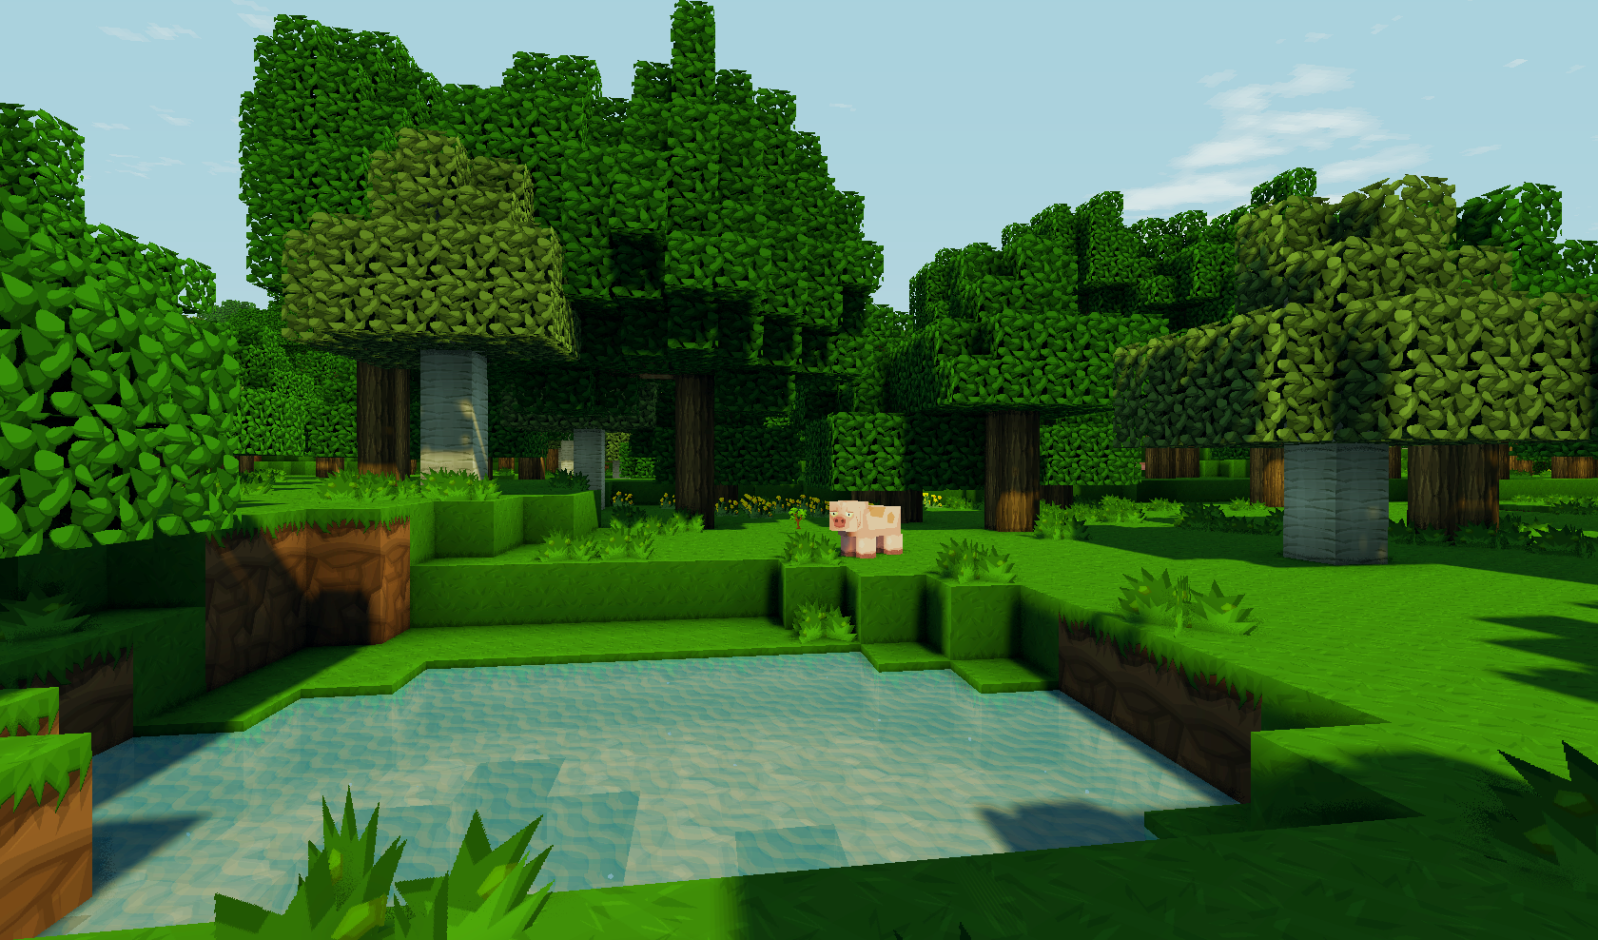 Cool Wallpaper Minecraft Thanksgiving - 7419eedc0a5547ea7739a146fbb9c76f  Picture_152780.png